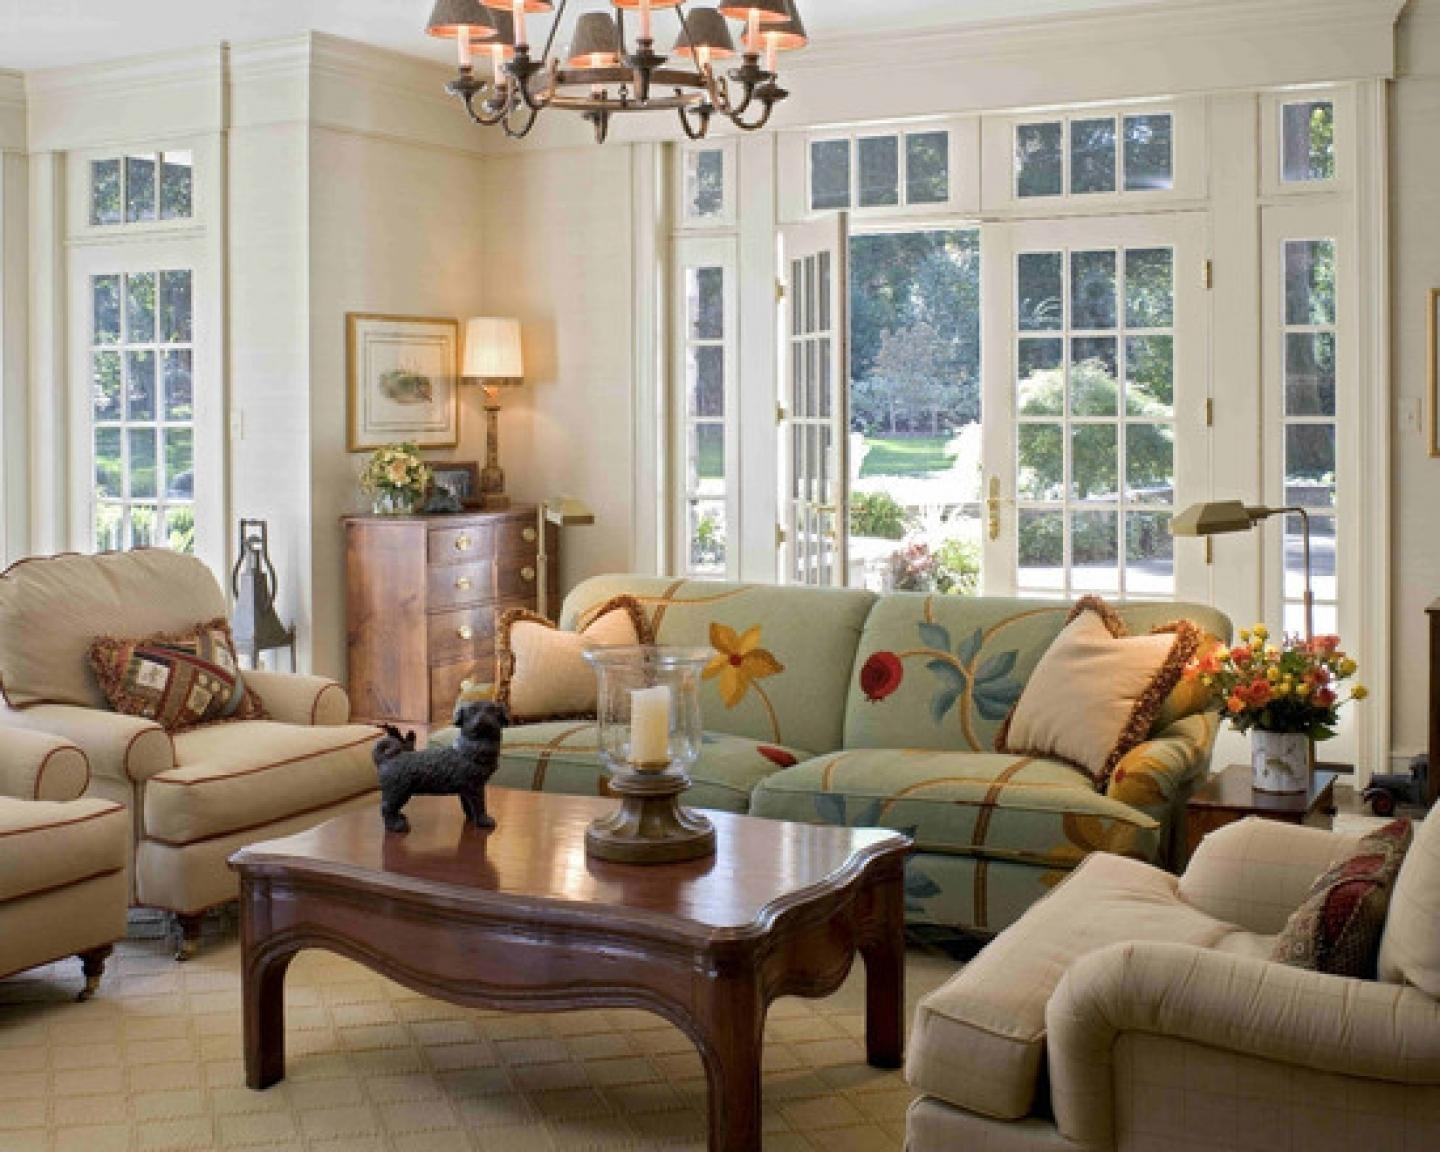 Sofas Center : Country Style Sofas In Floral Print And Loveseats Intended For Country Style Sofas (View 15 of 20)